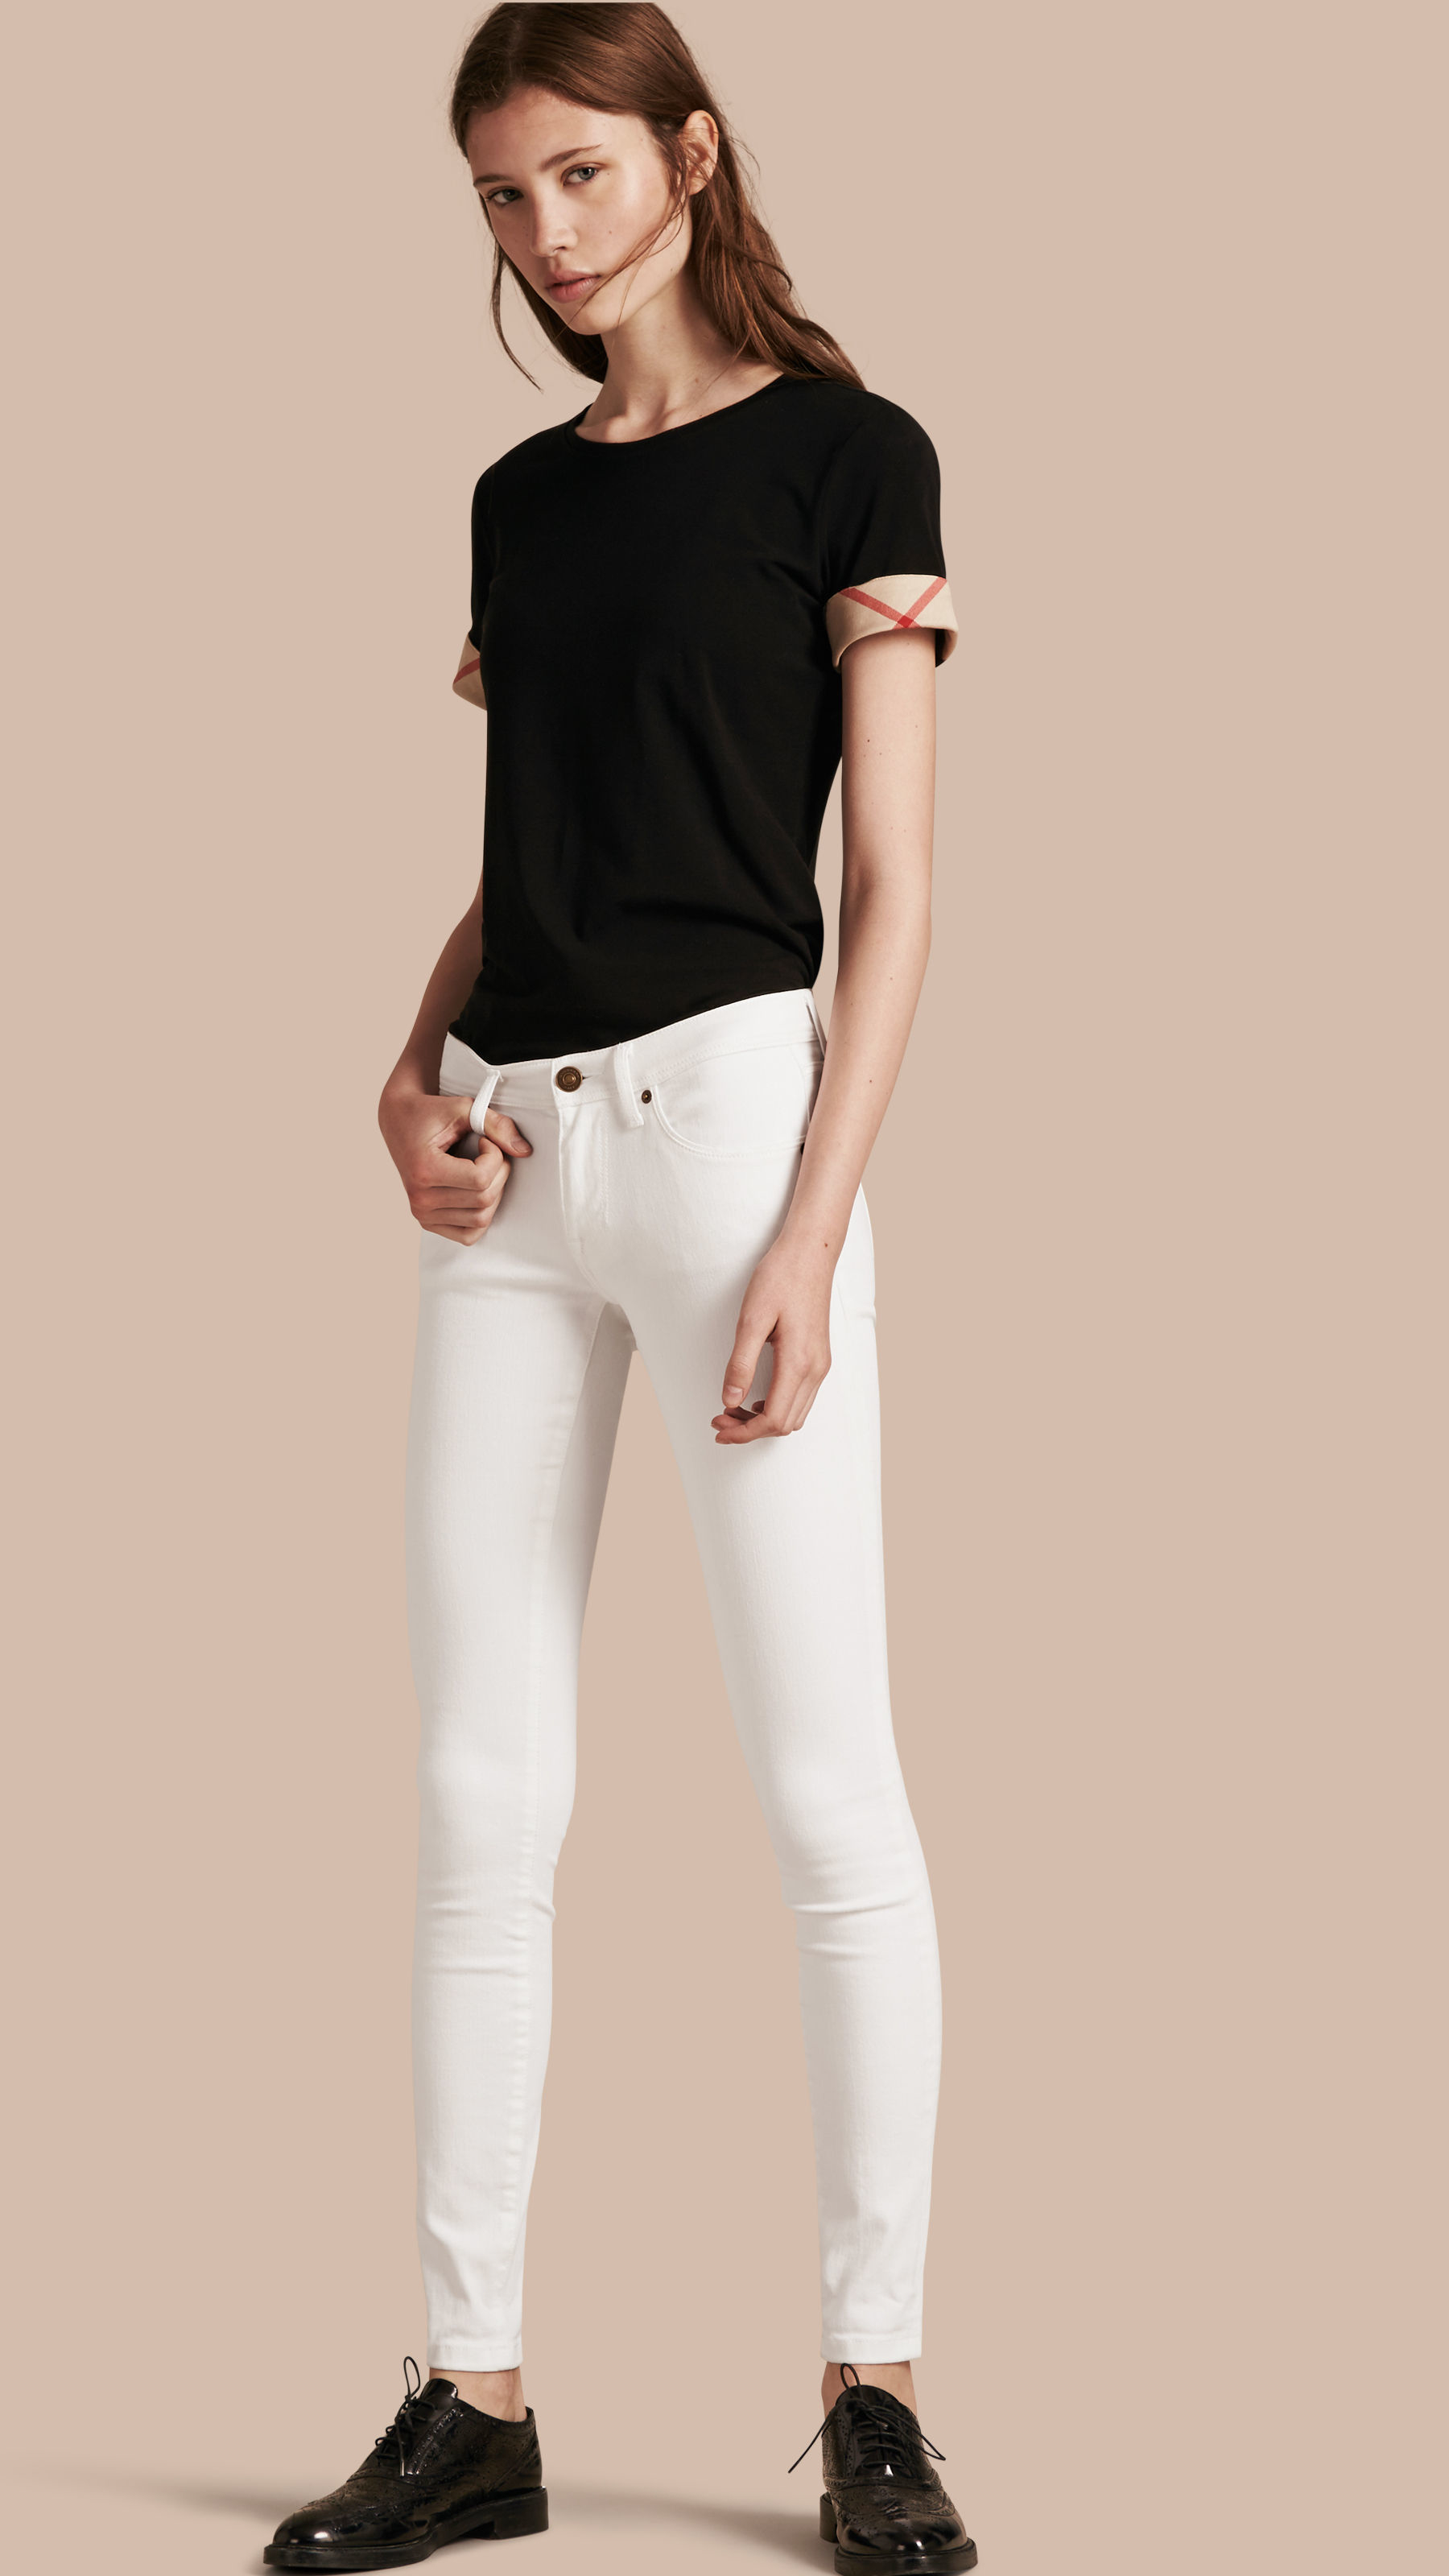 Burberry Denim Skinny Fit Low-rise White Jeans